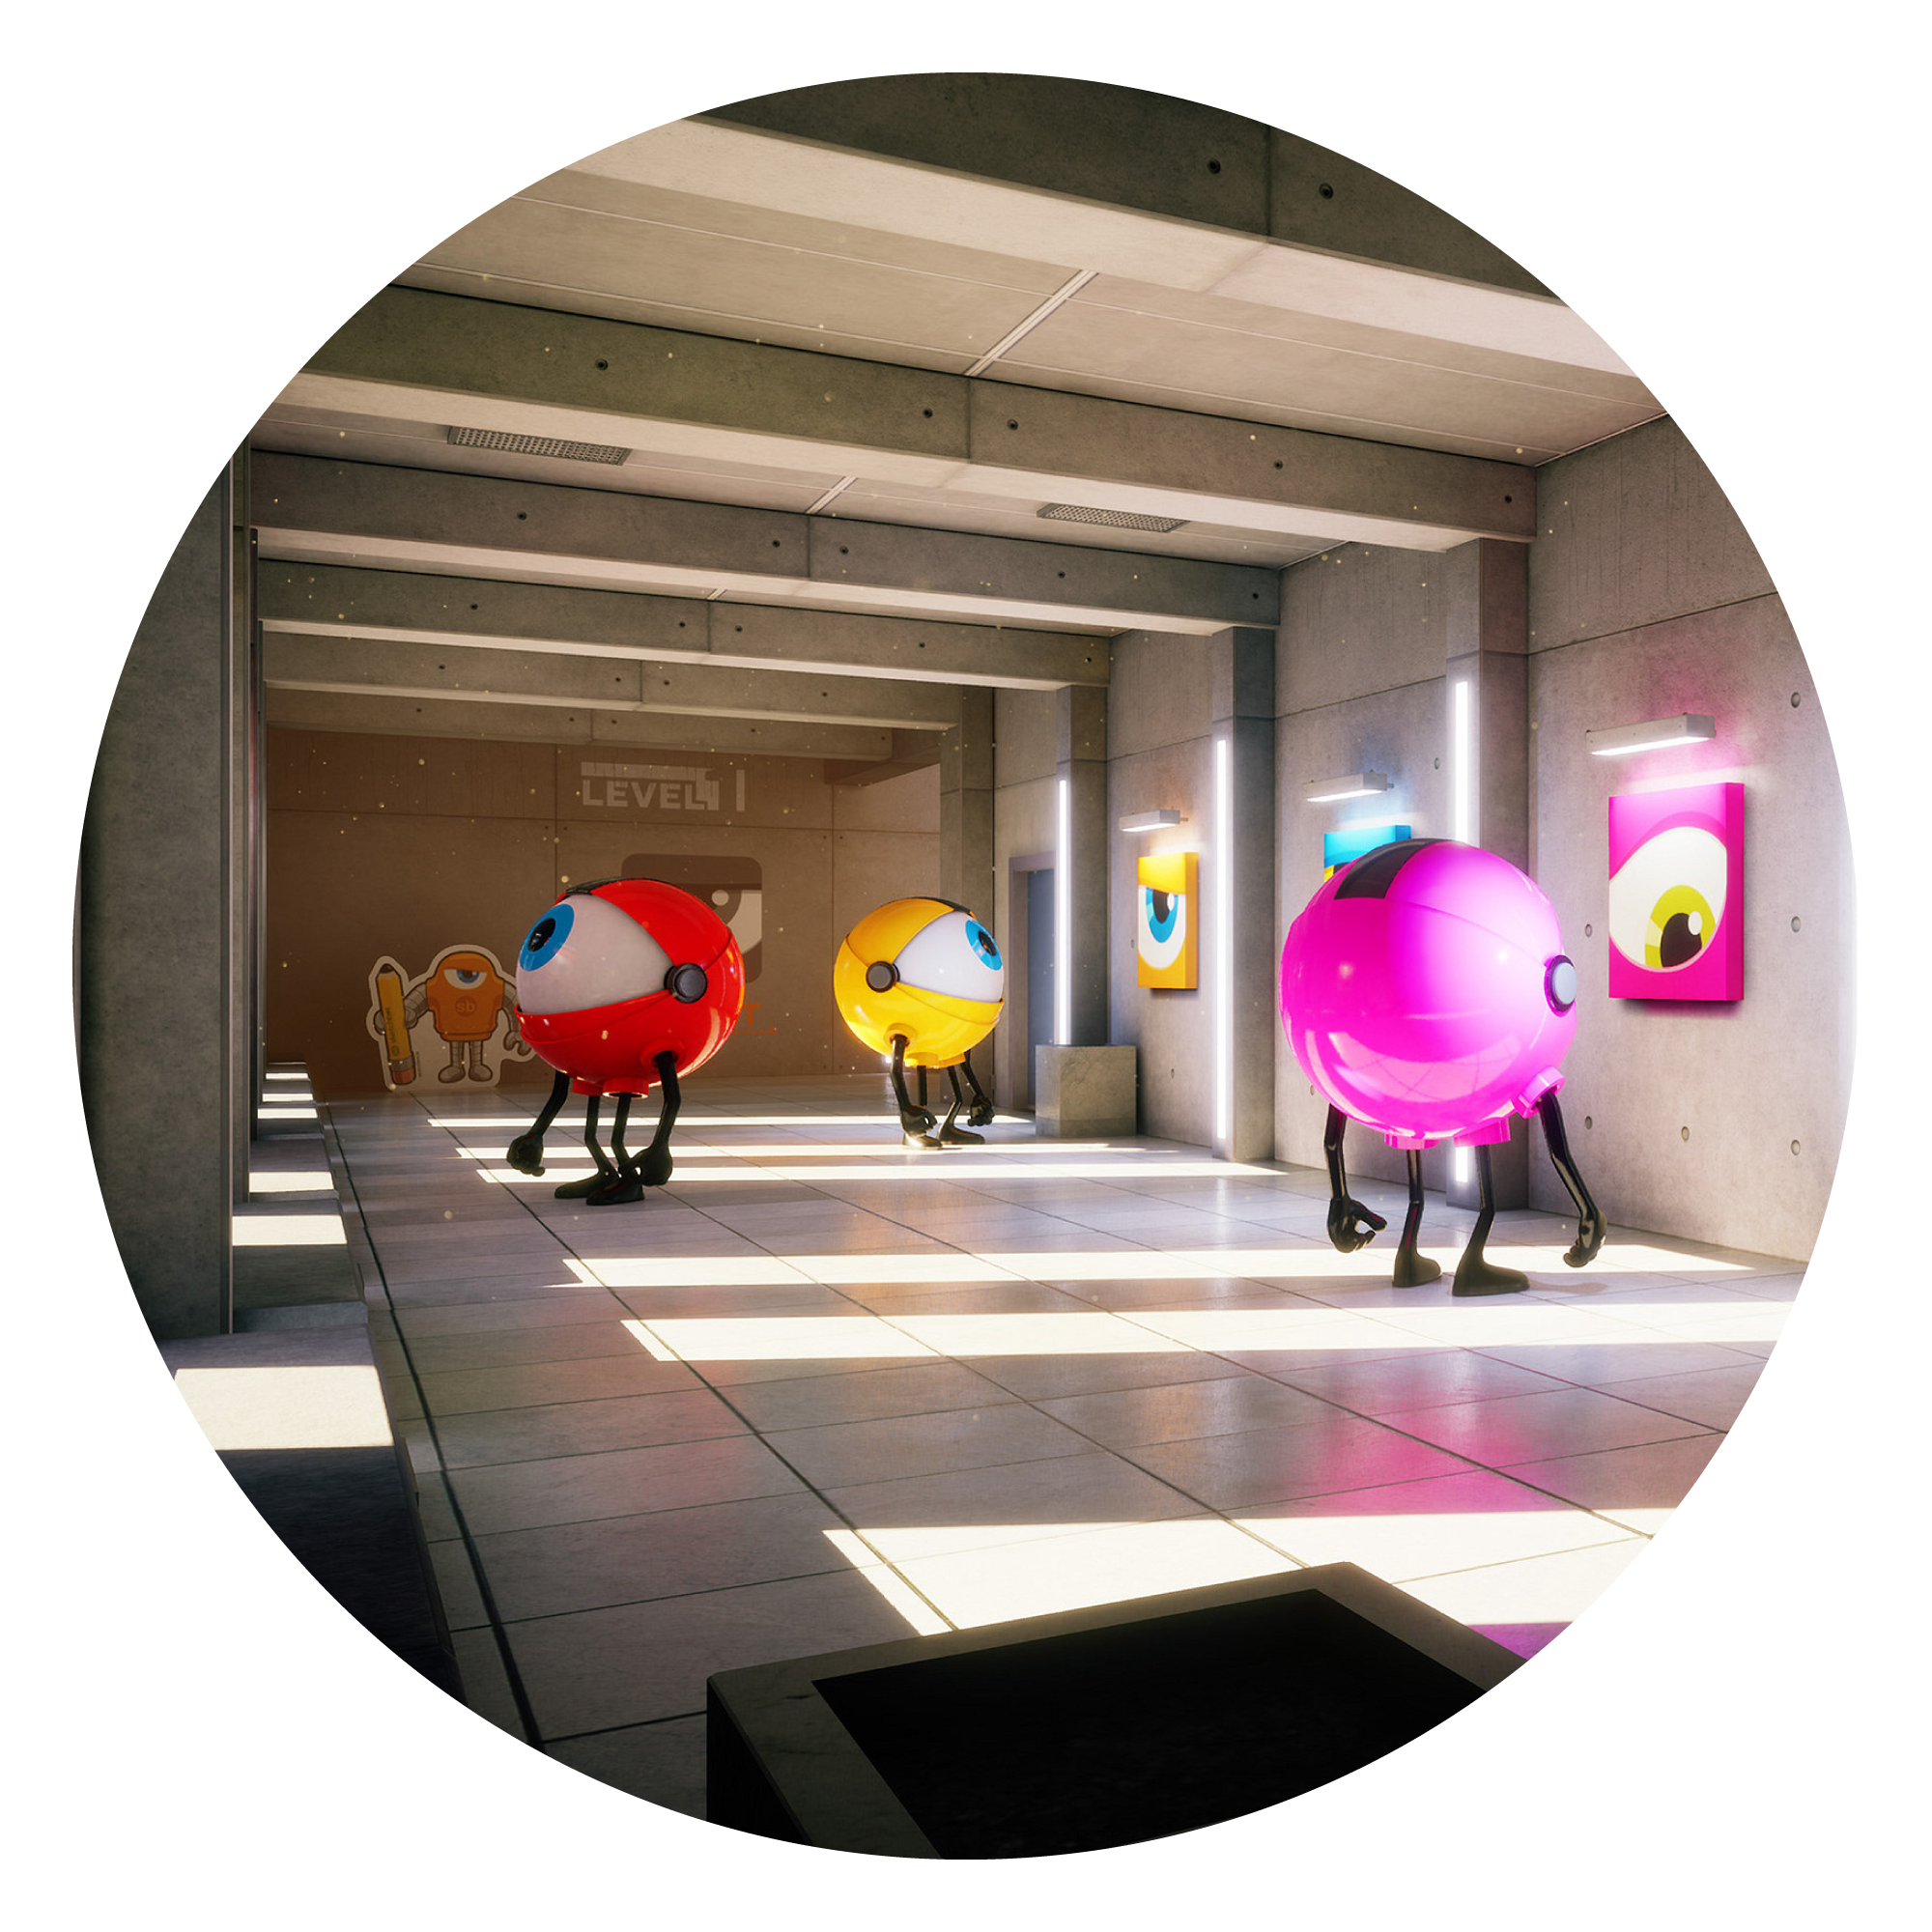 3D render by Steve Talkowski of 3 creatures with a giant eyeballs as heads in hallway